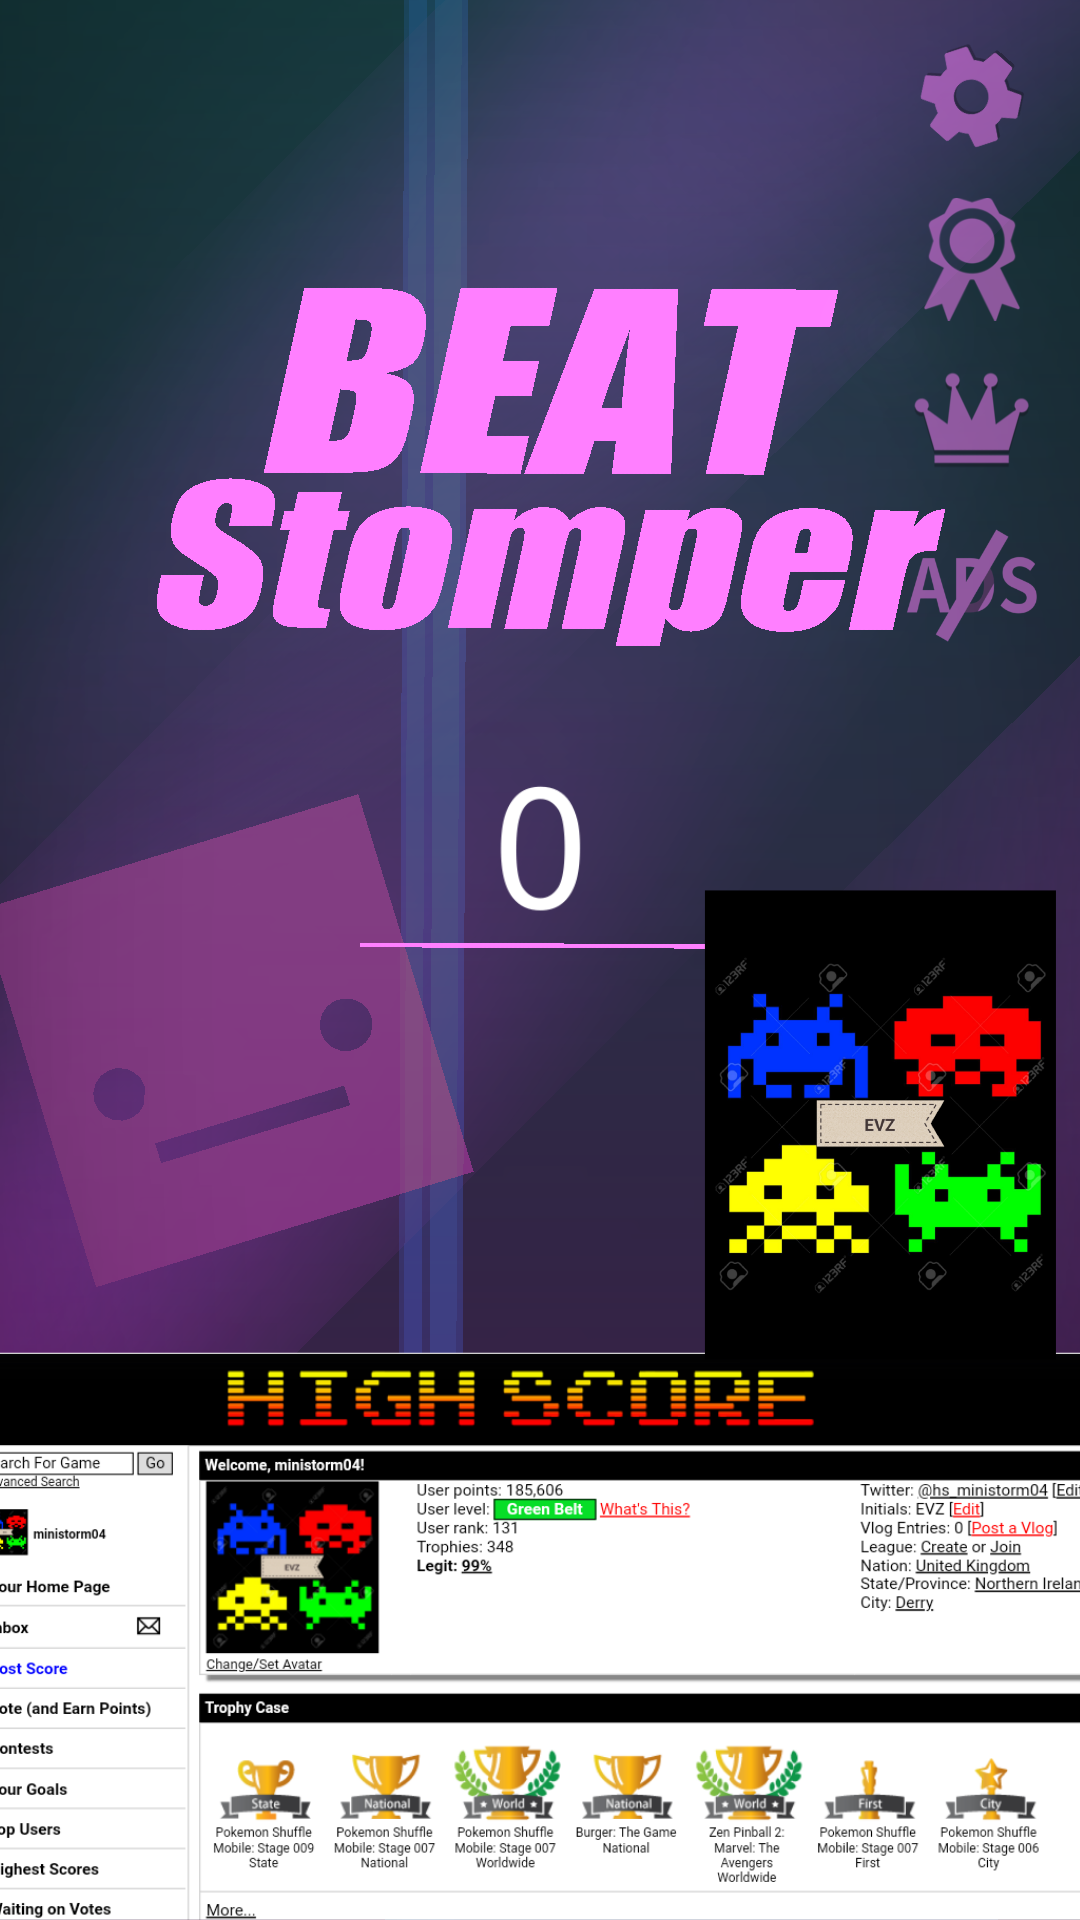 ministorm04: Beat Stomper (Android) 65 points on 2019-06-08 12:52:36